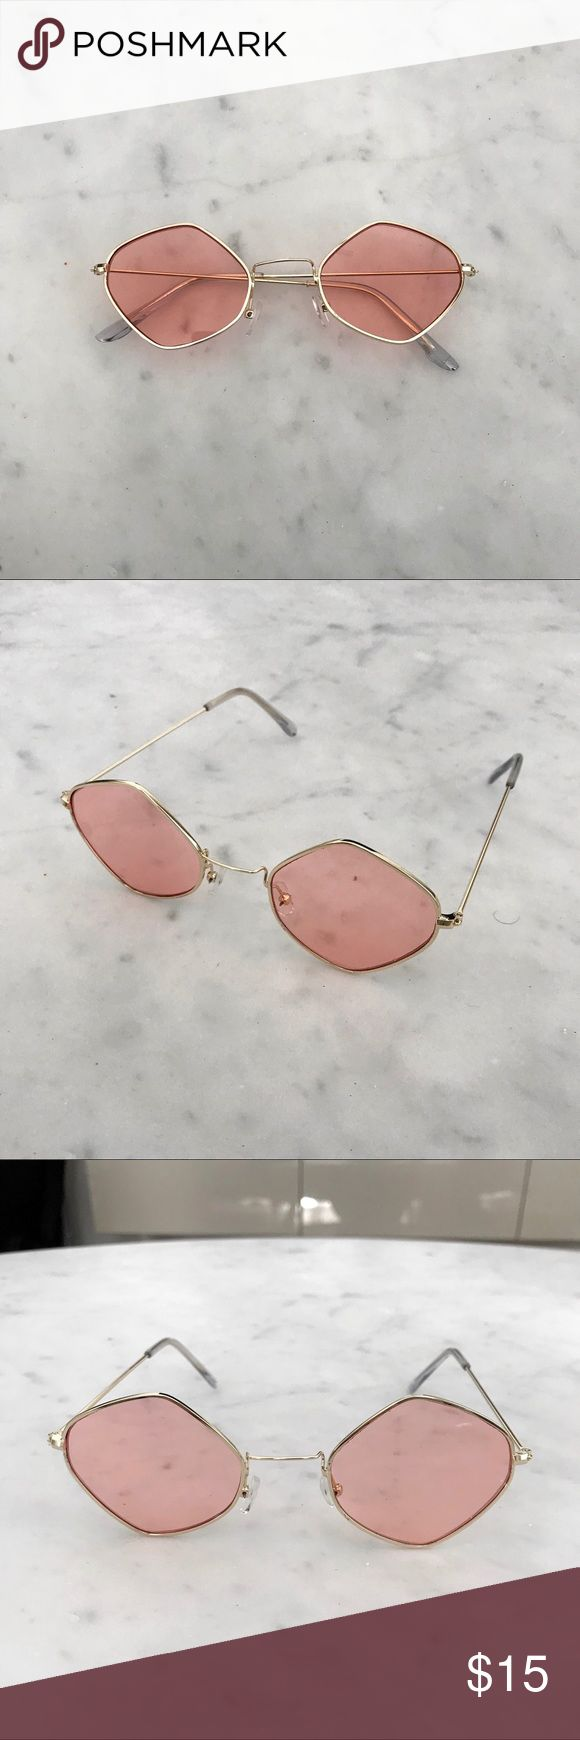 '90s Vintage-Look Small Sunglasses Small lens sunglasses with pink lenses and gold metal frames.   Measurements  Width: 14cm Temple: 14.2cm Lens With: 5.6cm Lens Height: 4.9cm  Bridge: 2.5cm Accessories Sunglasses